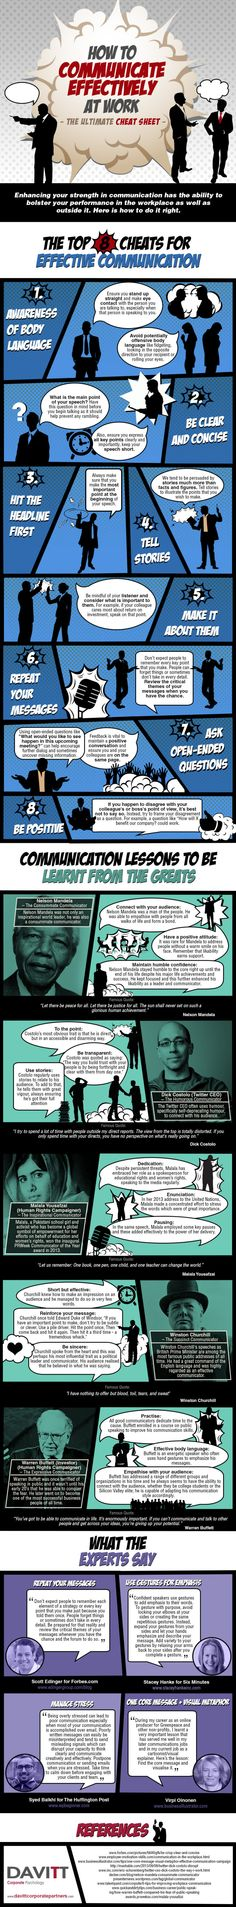 Effective communication can easily make or break a career, so whether you're looking for that next big promotion or trying to smooth over bumps in the lines of office communication, this infographic from Davitt Corporate Partners has got you covered. http://www.davittcorporatepartners.com/infographics/